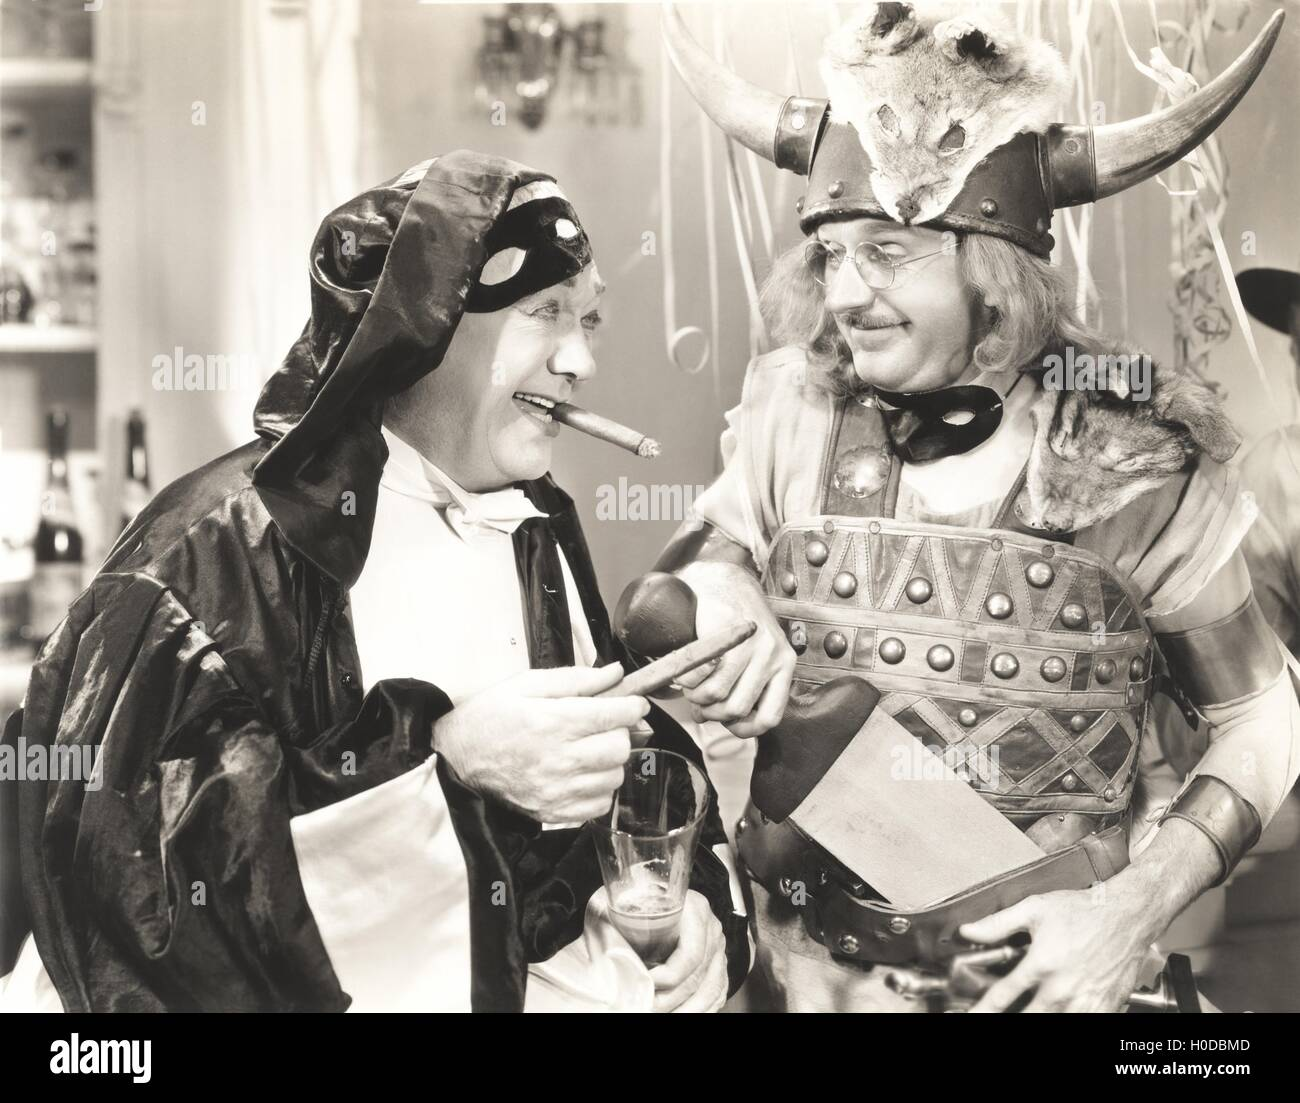 Two men at a costume party - Stock Image